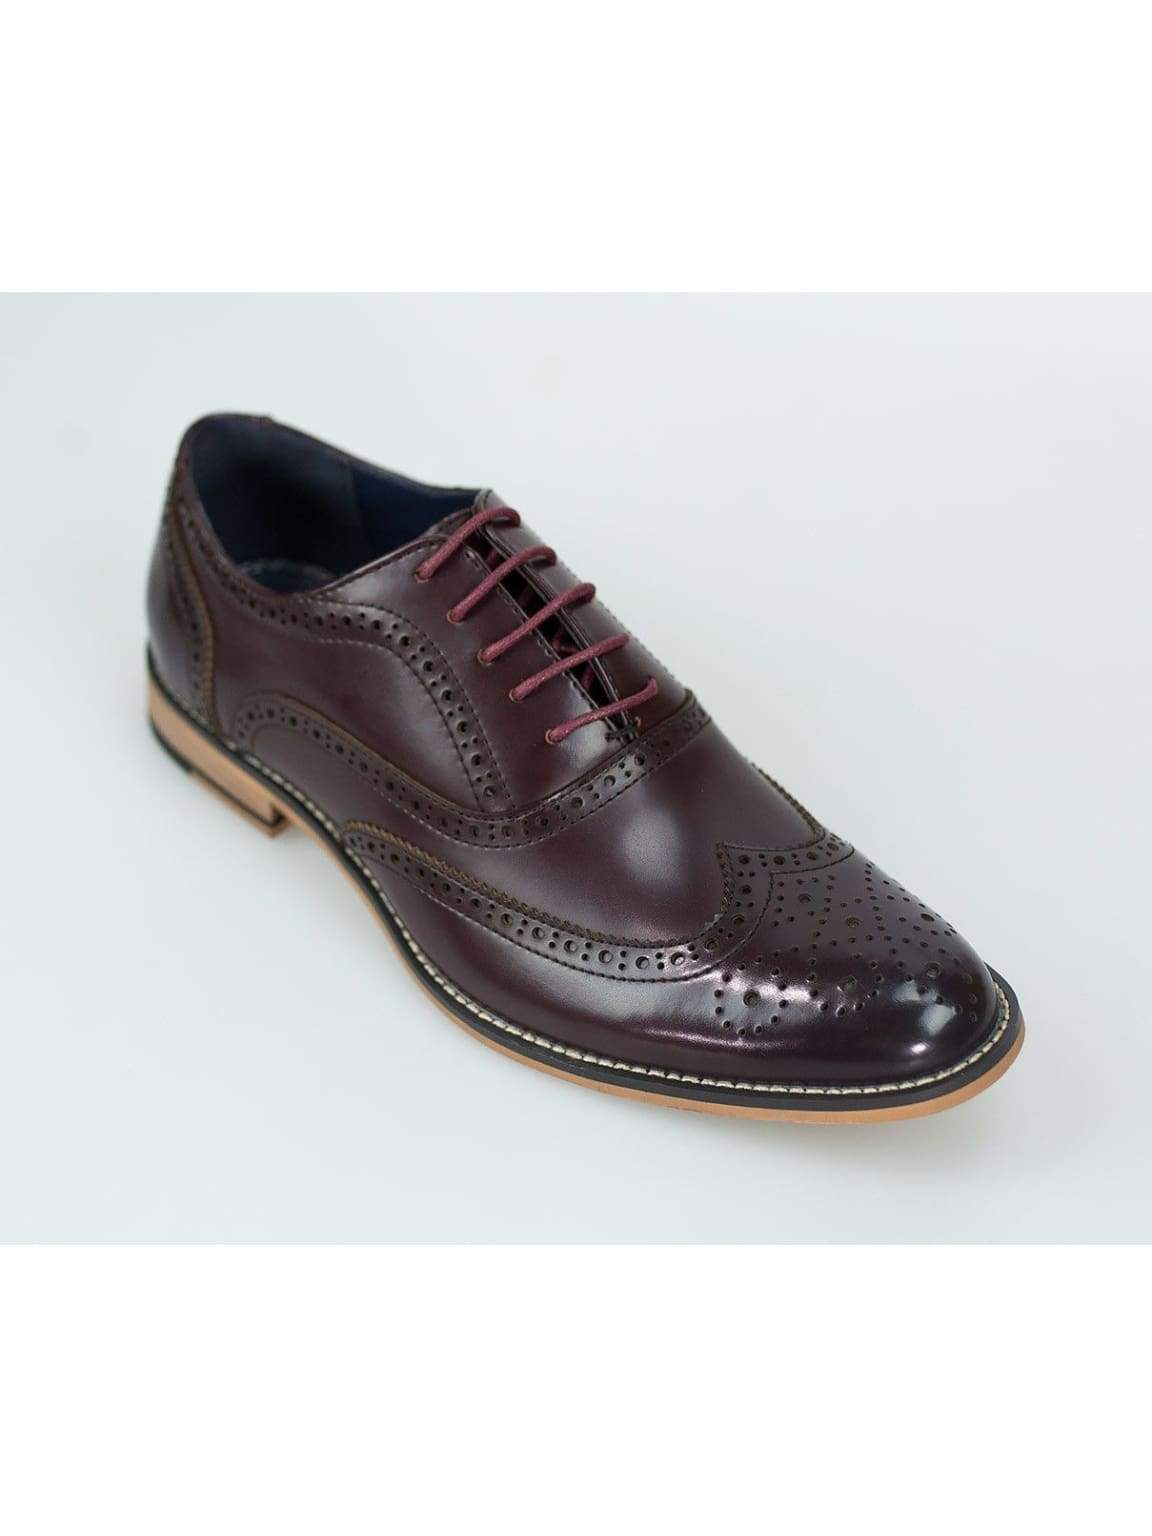 Oxford Burgundy Brogue Shoes by House of Cavani - UK7 | EU41 - Shoes